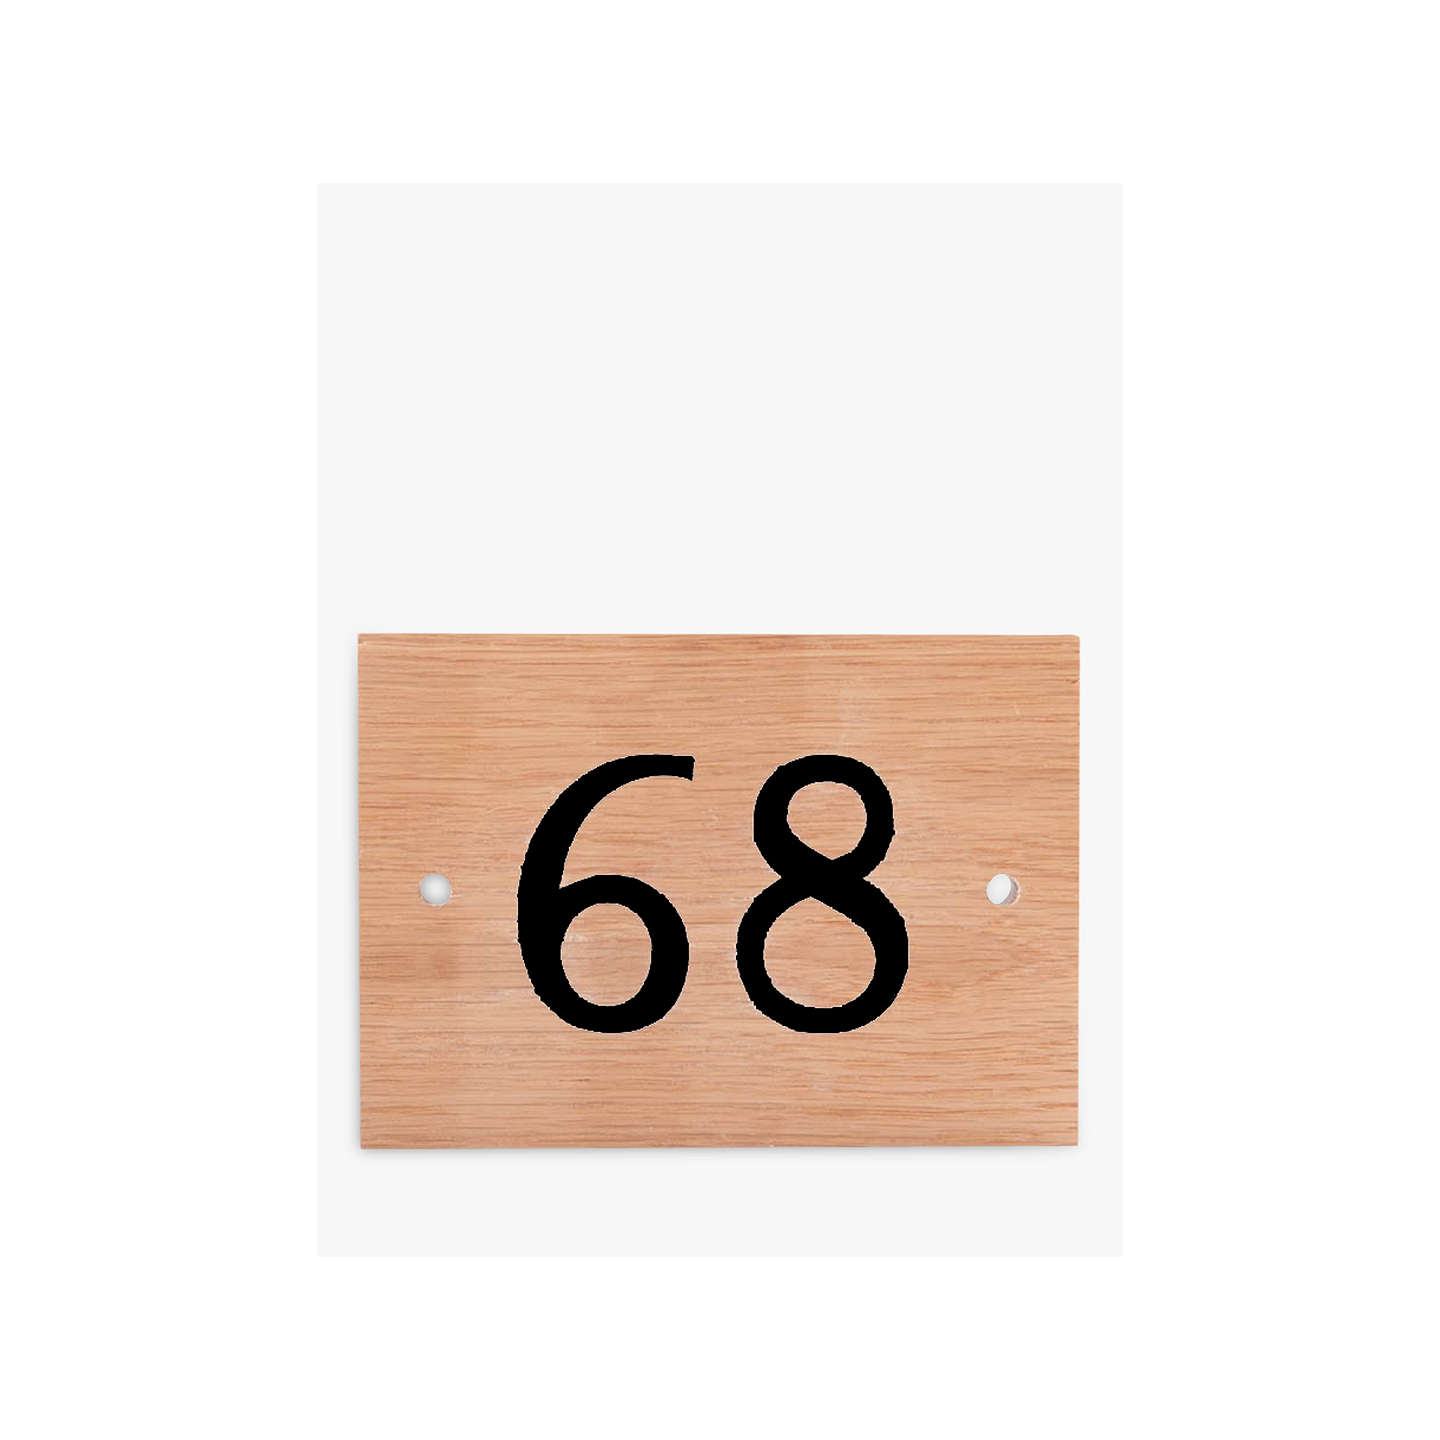 BuyThe House Nameplate Company Personalised Oak Wood House Number, 2 Digit, Black Online at johnlewis.com